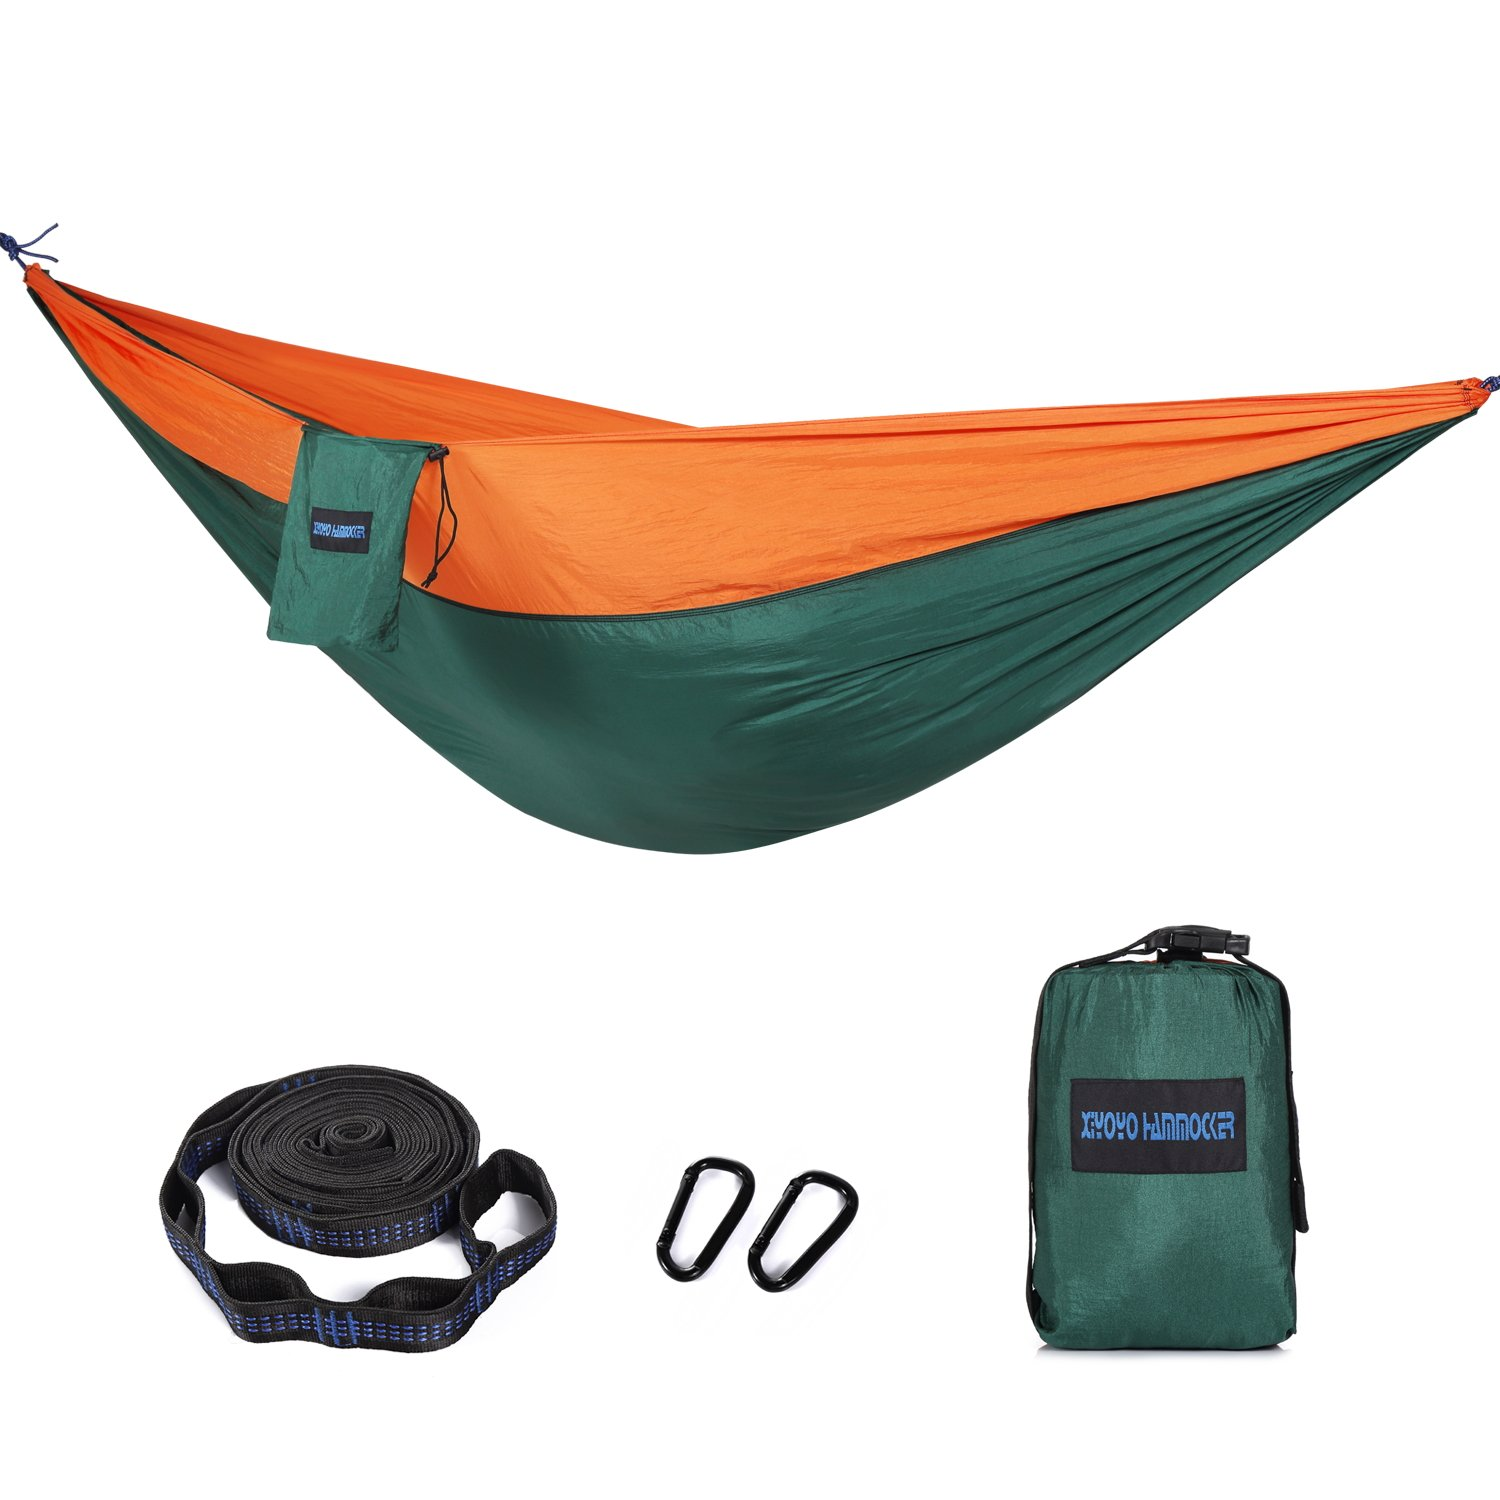 Camping Hammocks with Tree Straps, Indoor Outdoor Double & Single Lightweight Nylon Parachute Hammocks for Backpacking Survival, Travel, Beach, Garden by Homeme